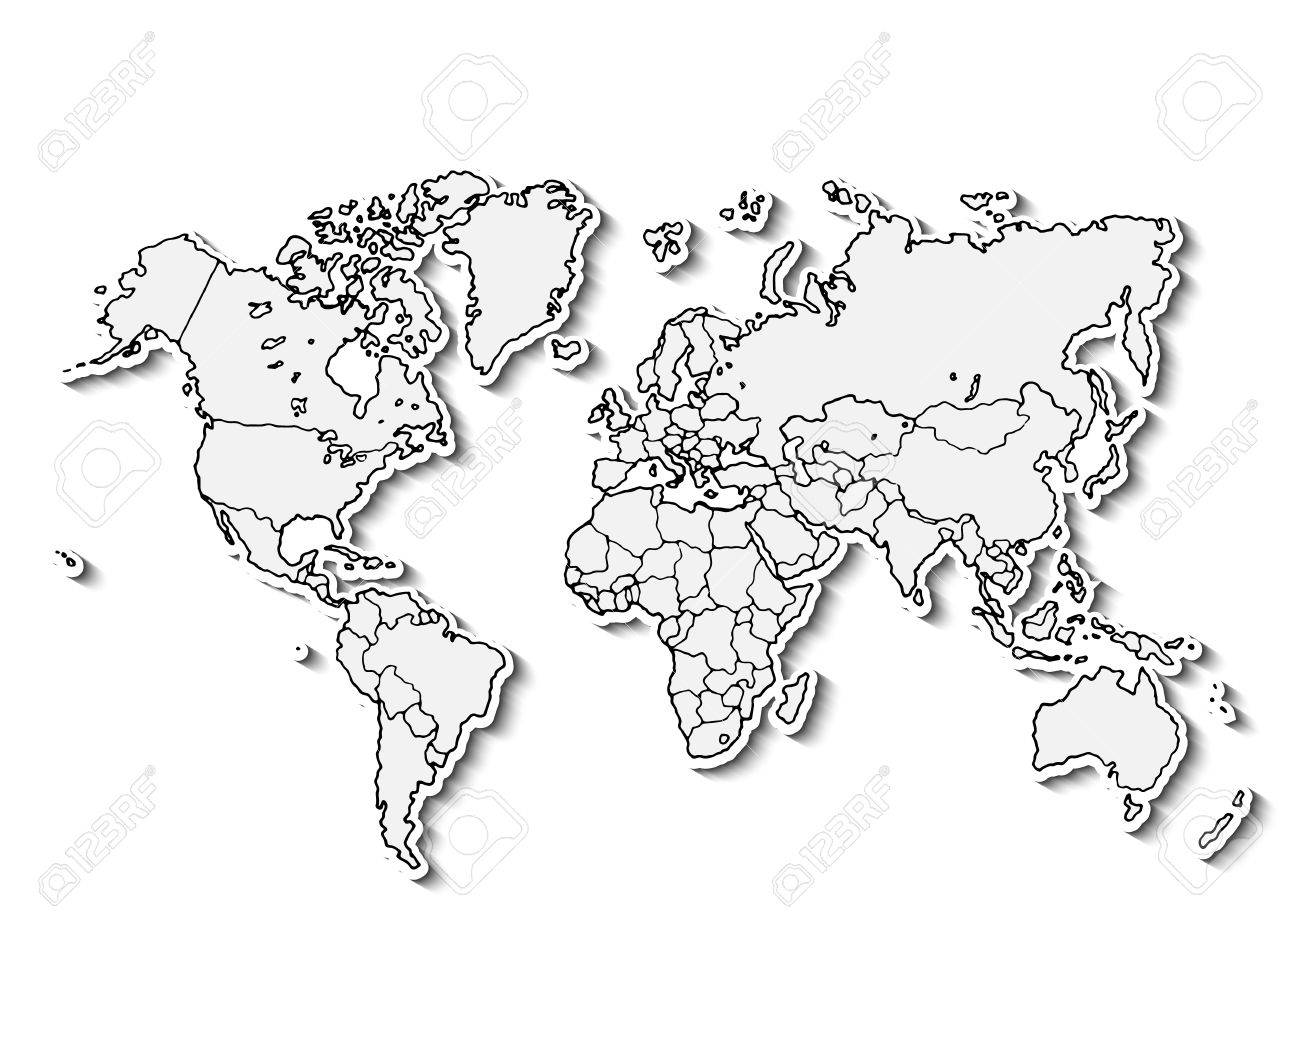 Hand drawn realistic world map. Concept with doodle icons.